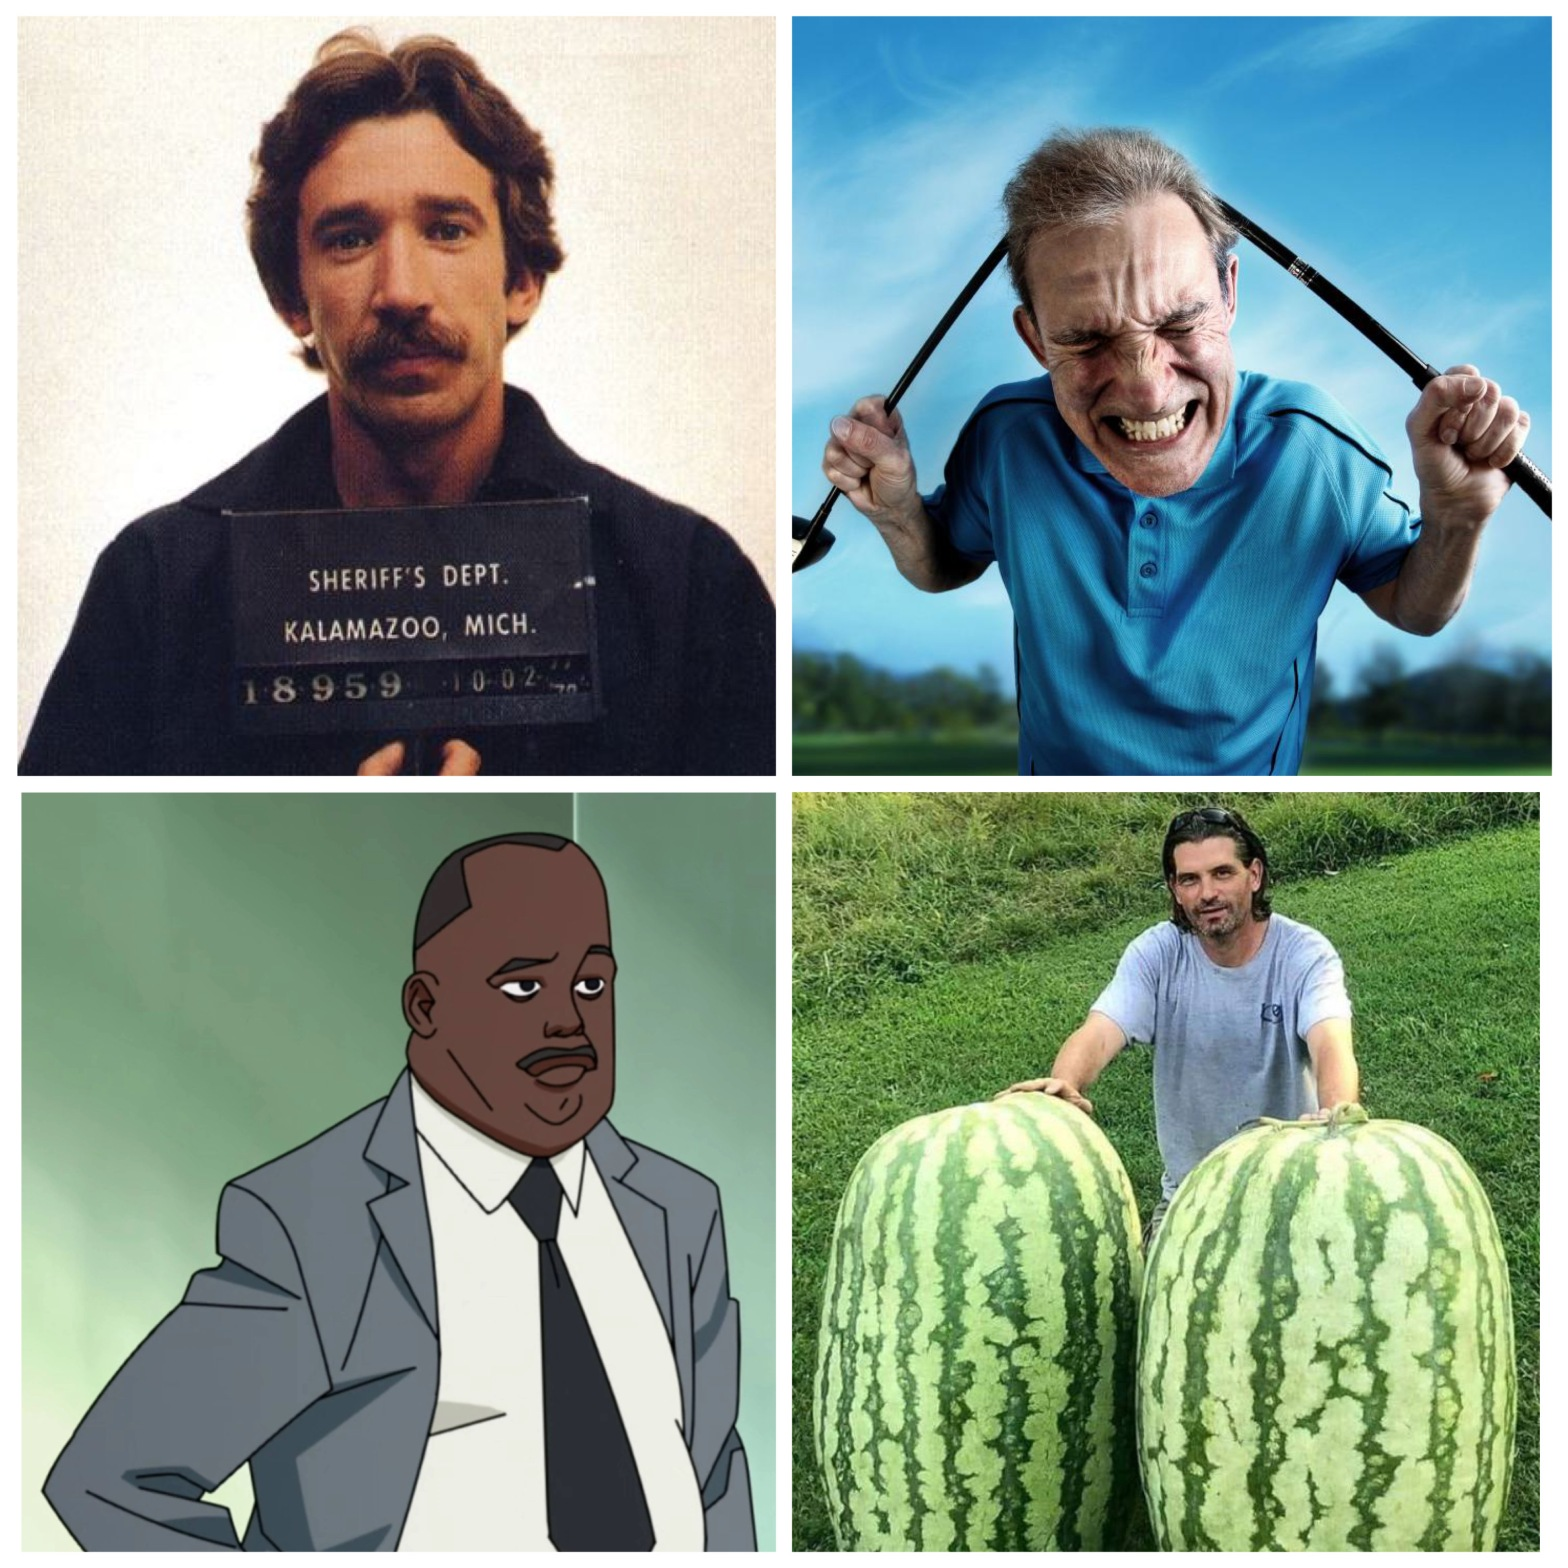 Tim Allen's mugshot, an angry golfer, Principal Winslow from Invincible, and two giant, smooth watermelons.